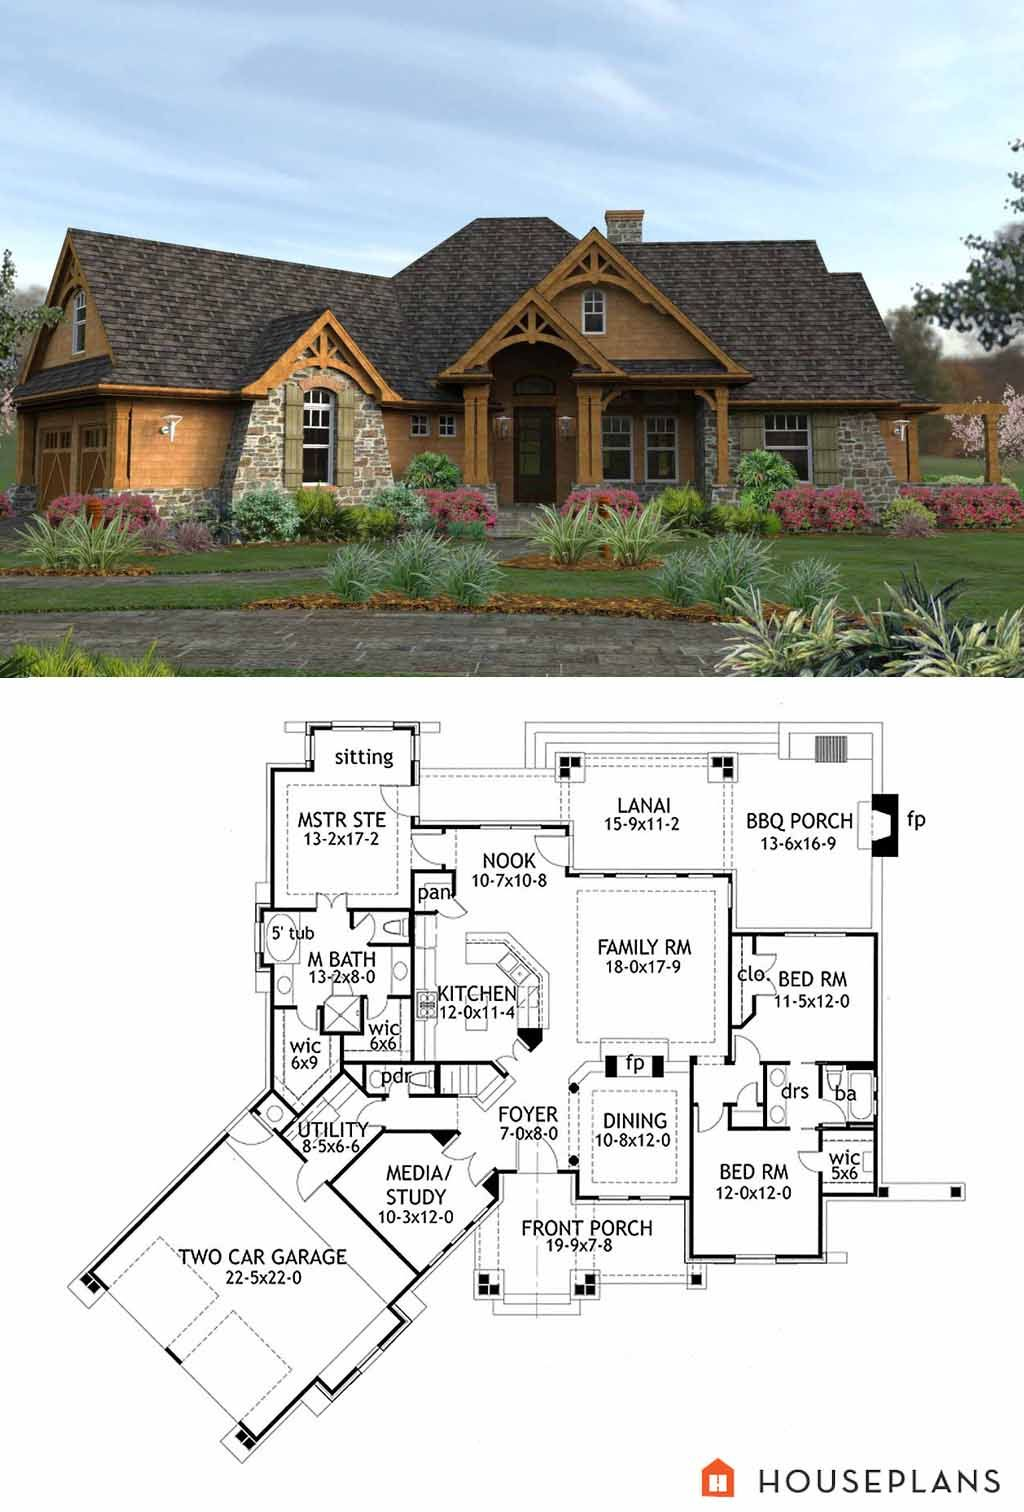 Craftsman Style House Plan 3 Beds 2 5 Baths 2091 Sq Ft Plan 120 162 Craftsman House Plans Craftsman House Designs Craftsman Style House Plans